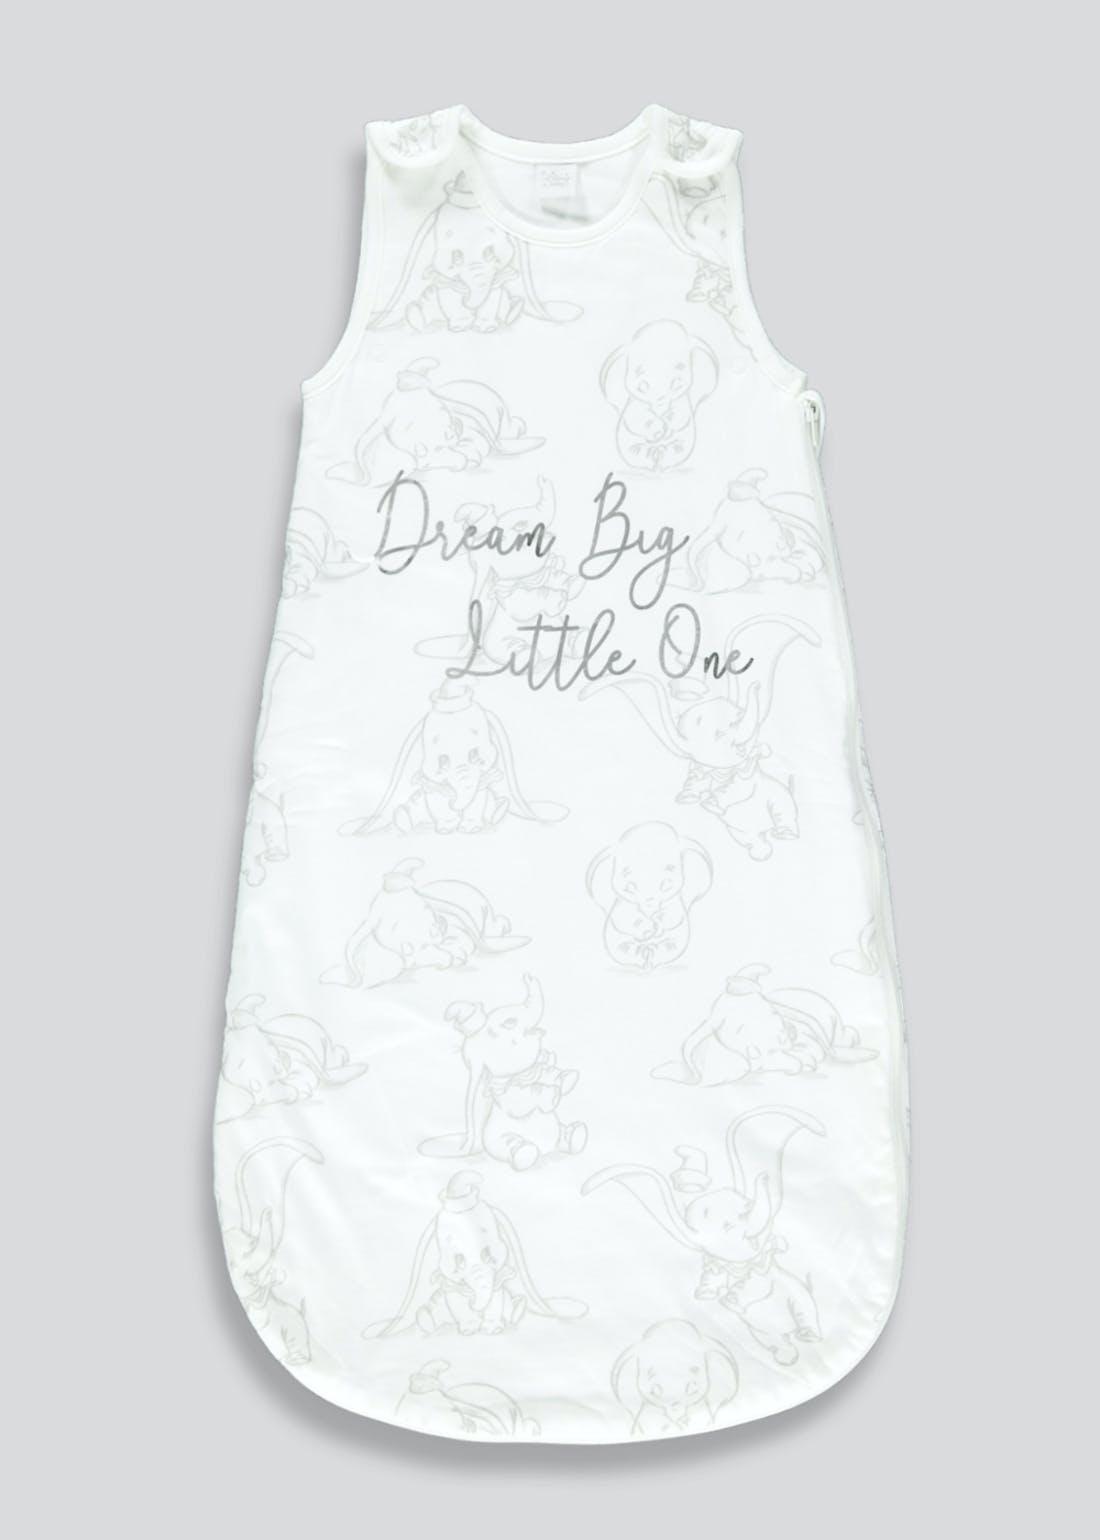 Unisex Disney Dumbo Sleeping Bag (Newborn-18mths)